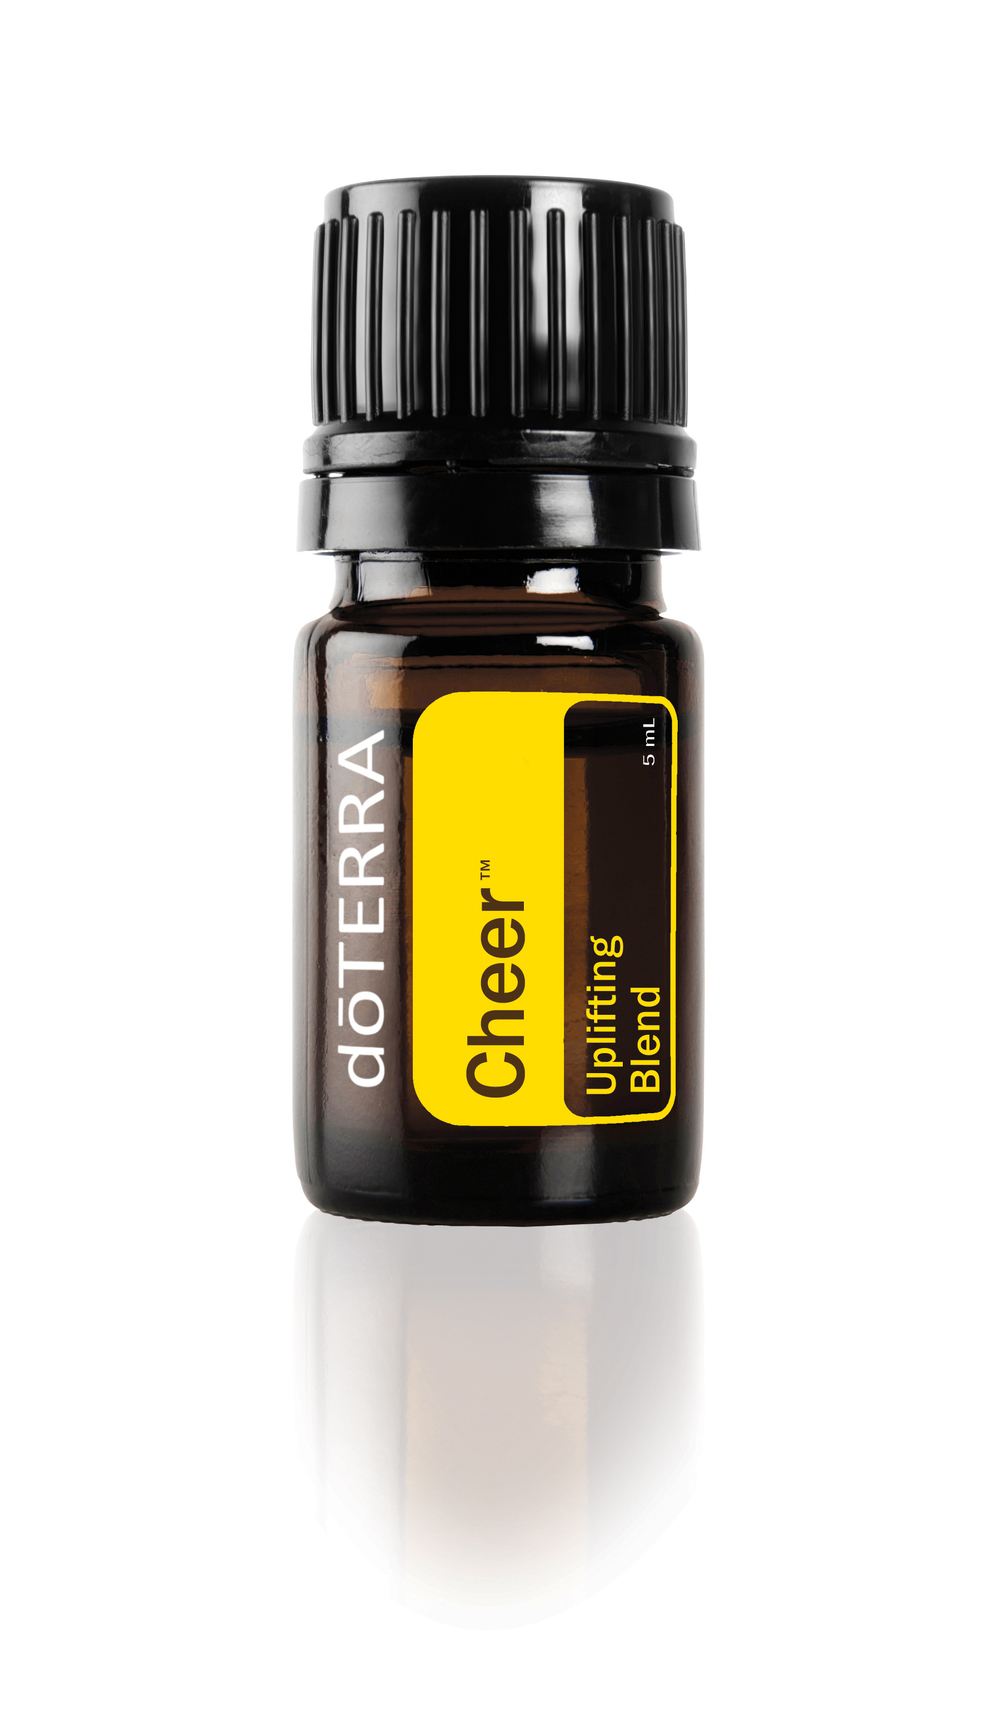 Cheer Essential Oils Uplifting Blend